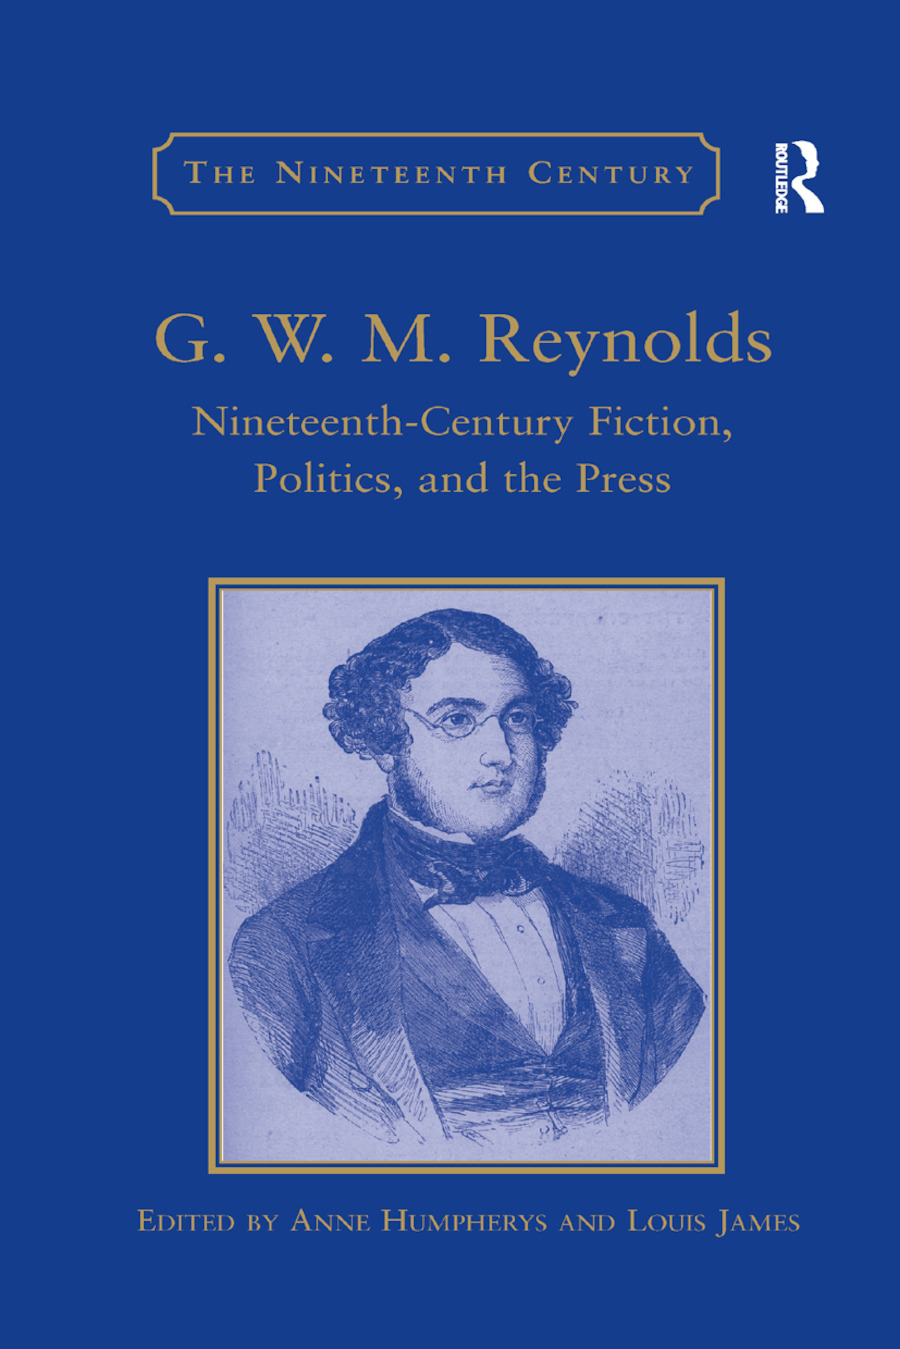 G.W.M. Reynolds: Nineteenth-Century Fiction, Politics, and the Press book cover